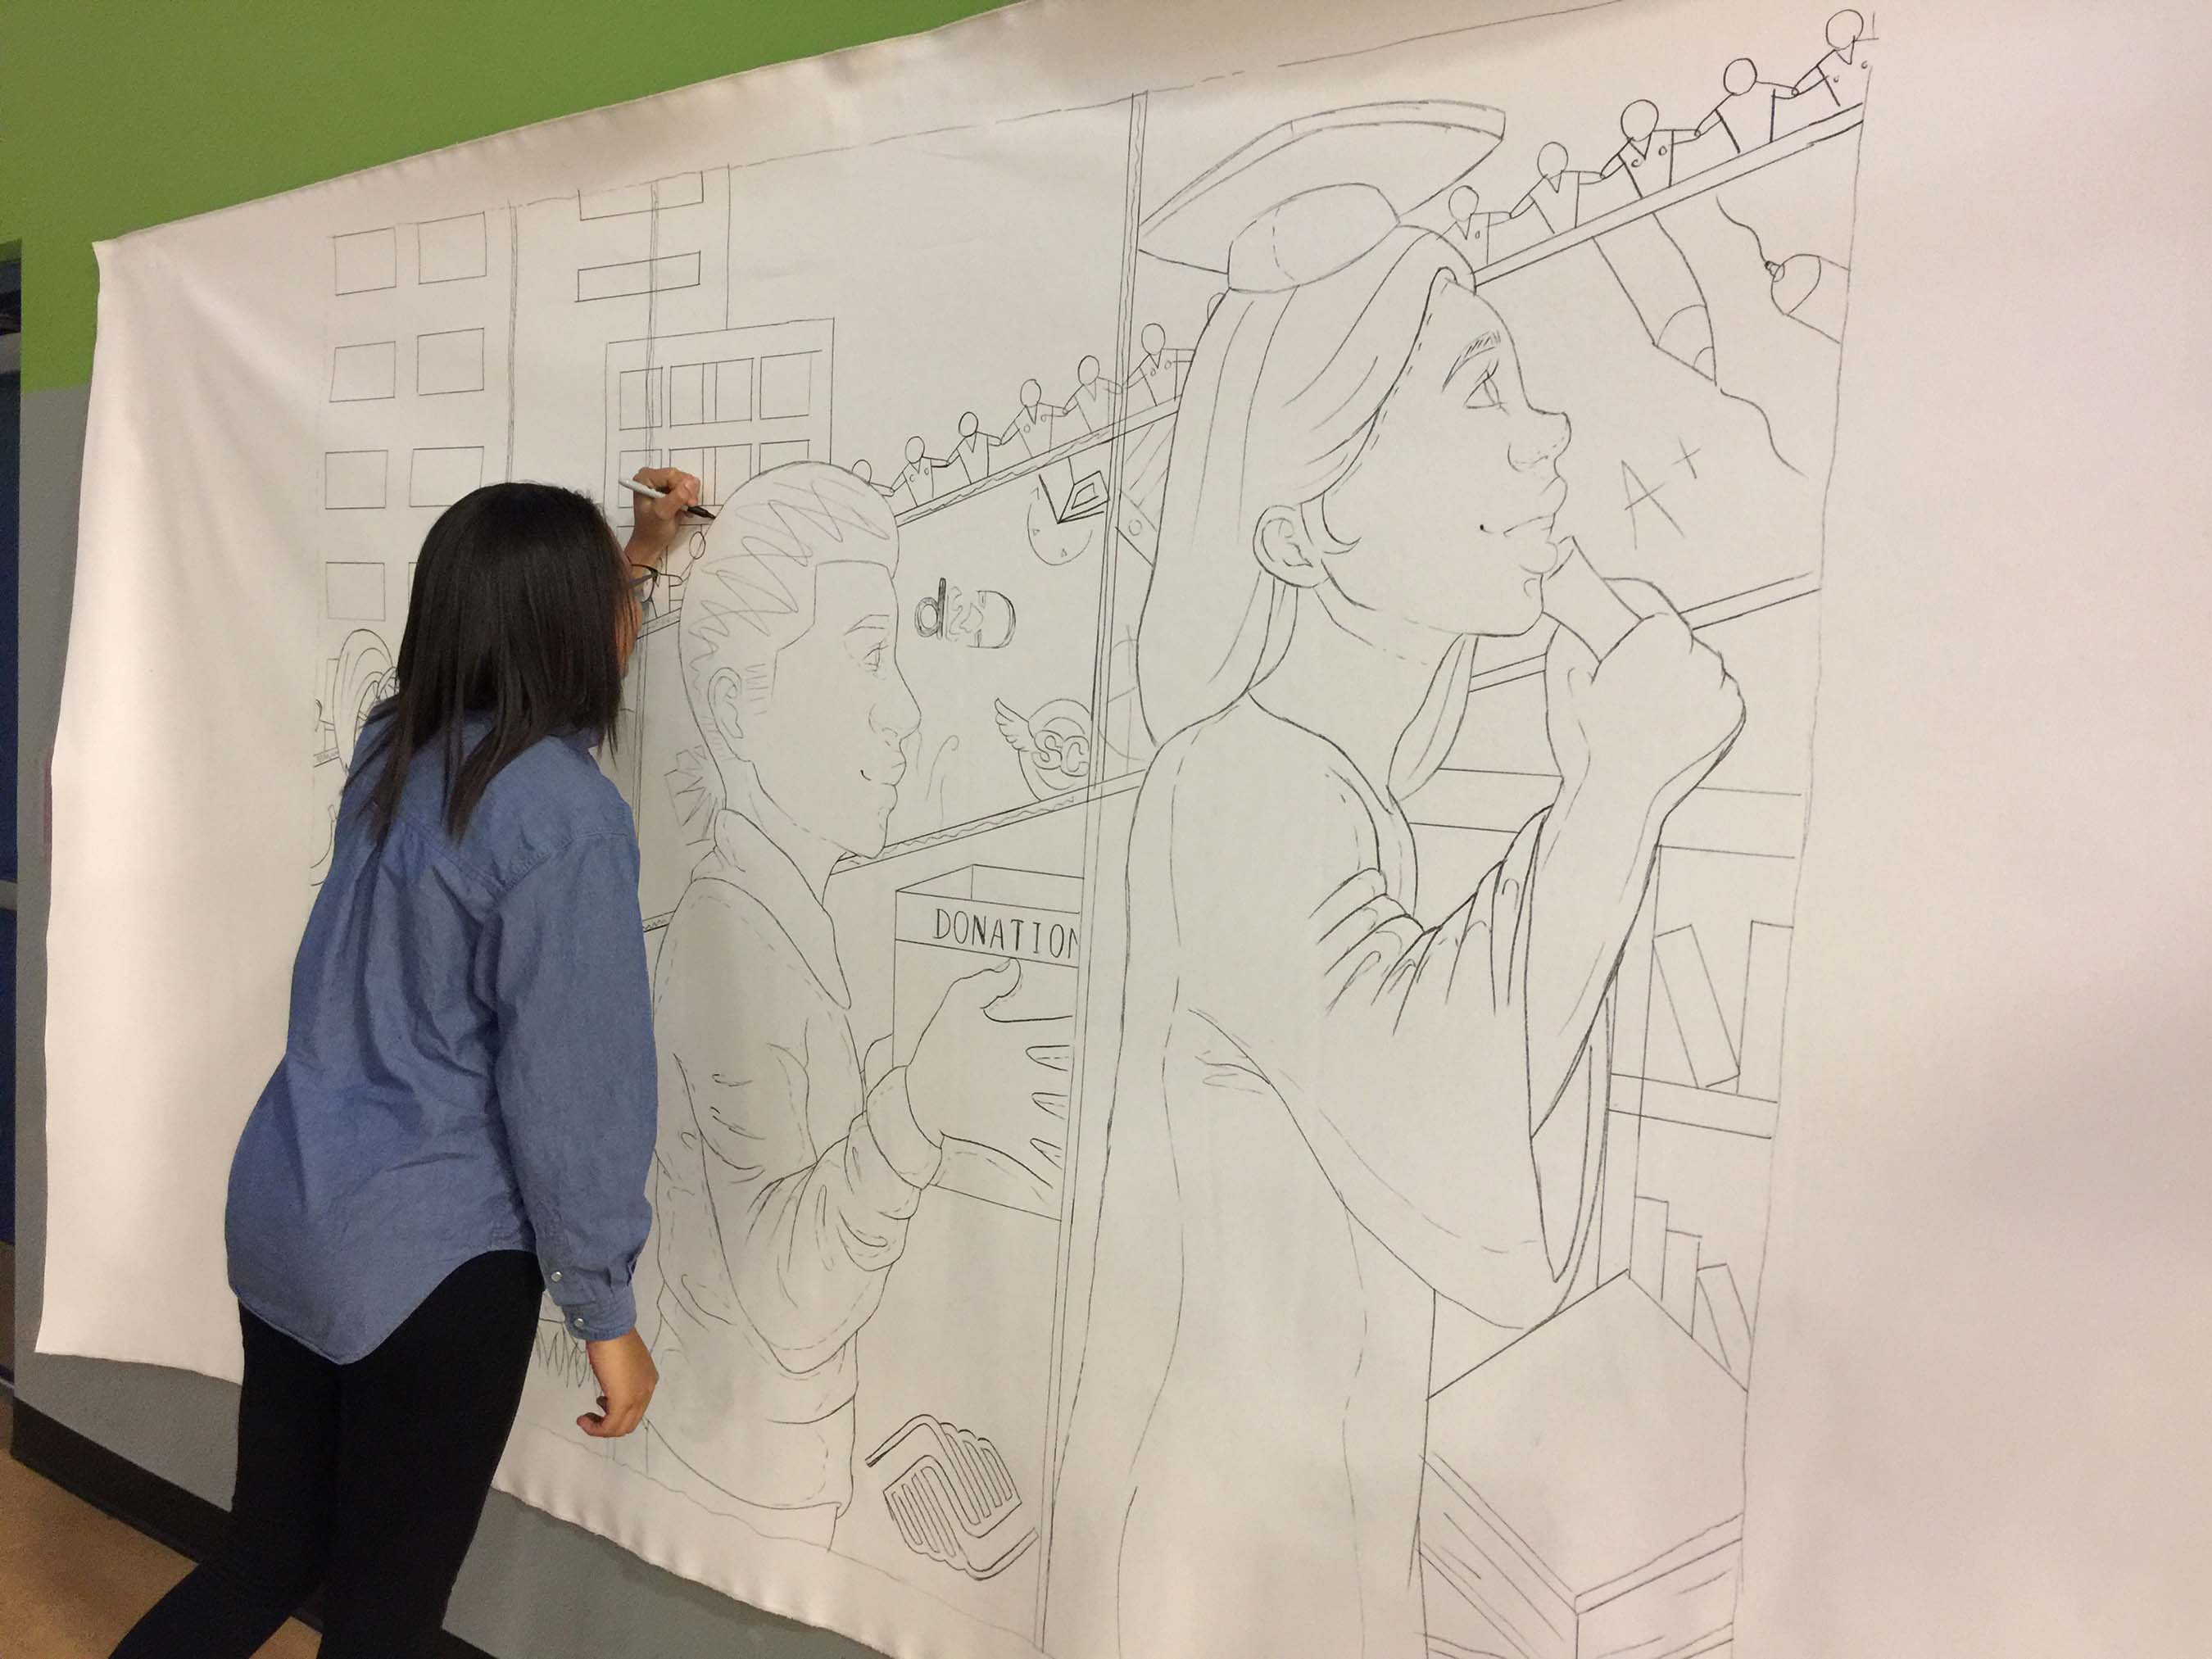 Club Member Debora C. sketches an original mural design for Renovation Across the Nation Clubs.